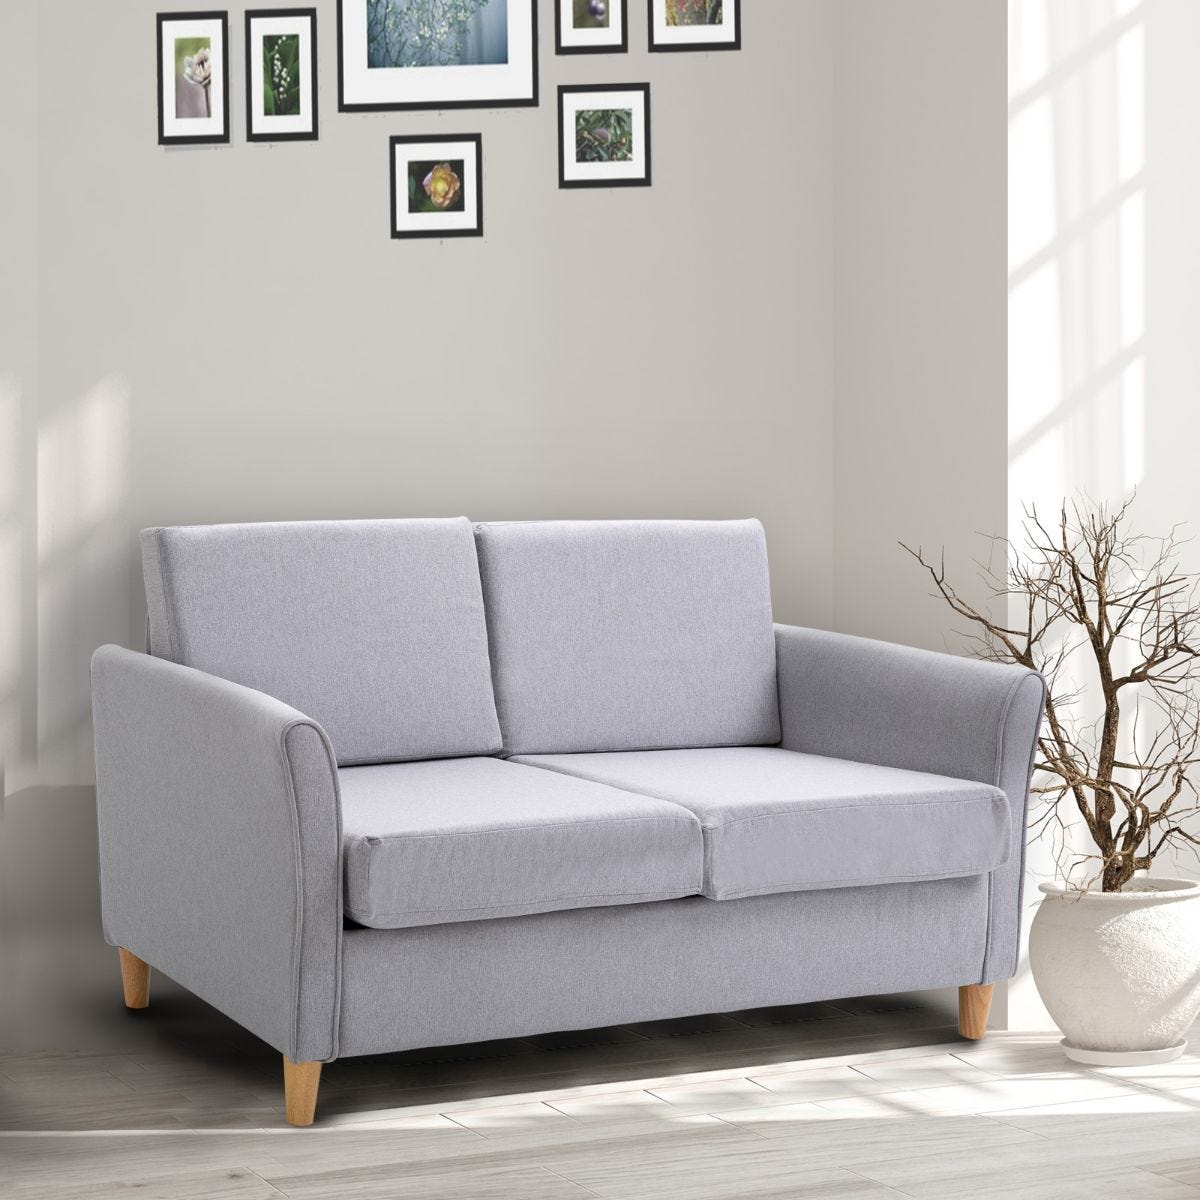 Compact Two Seater Sofa With Armrests Linen Style Upholstery Grey